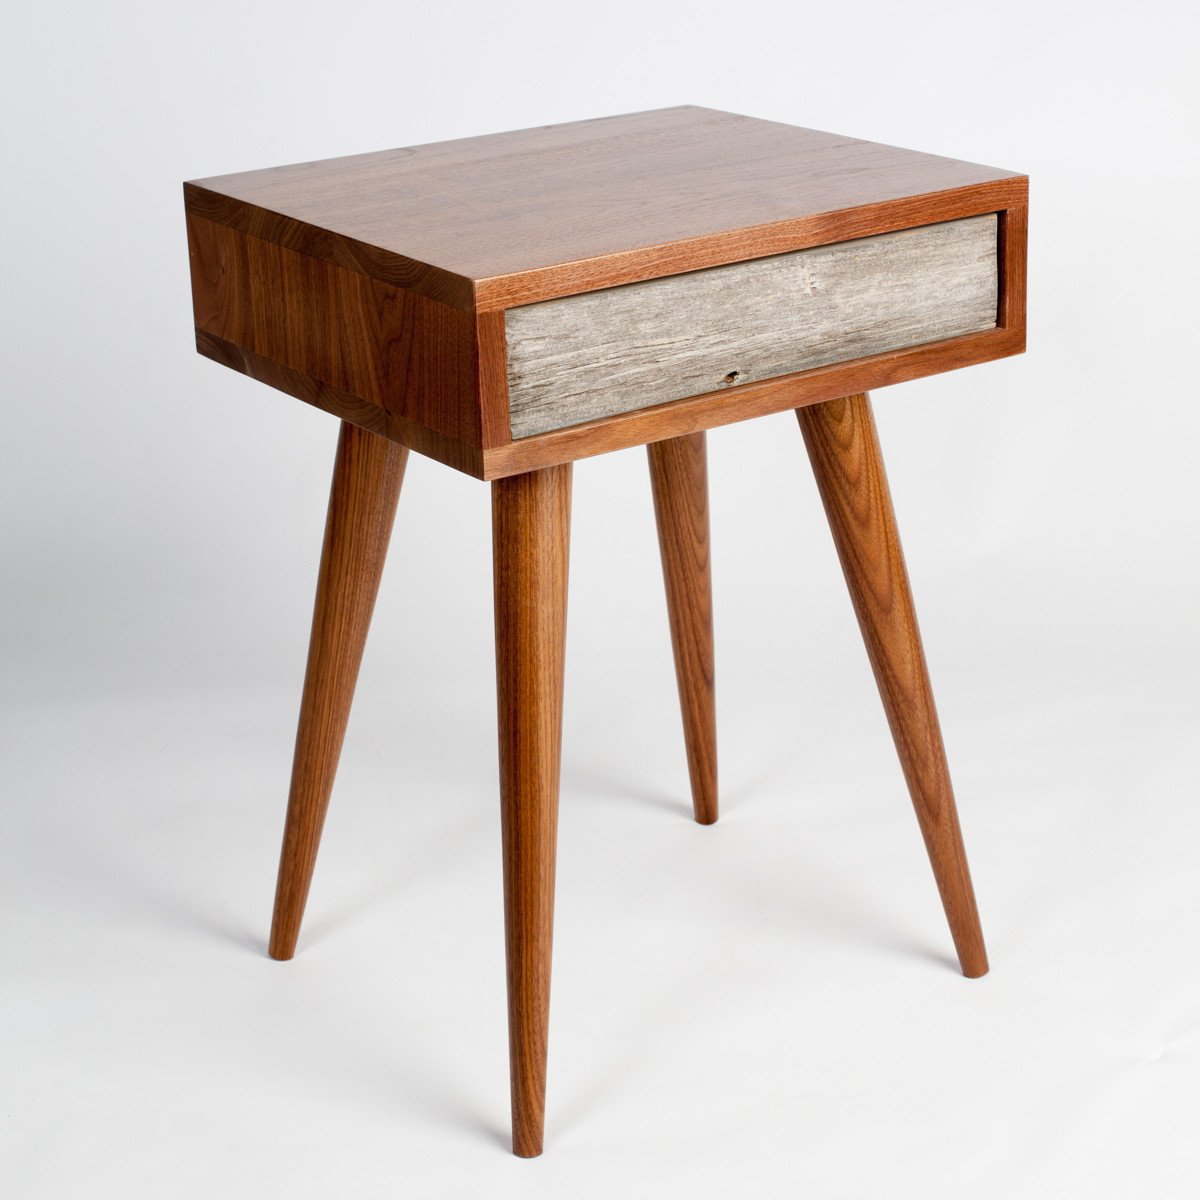 Rustic Mid Century End Table / Side Table / Nightstand   Flint Alley  Furniture.